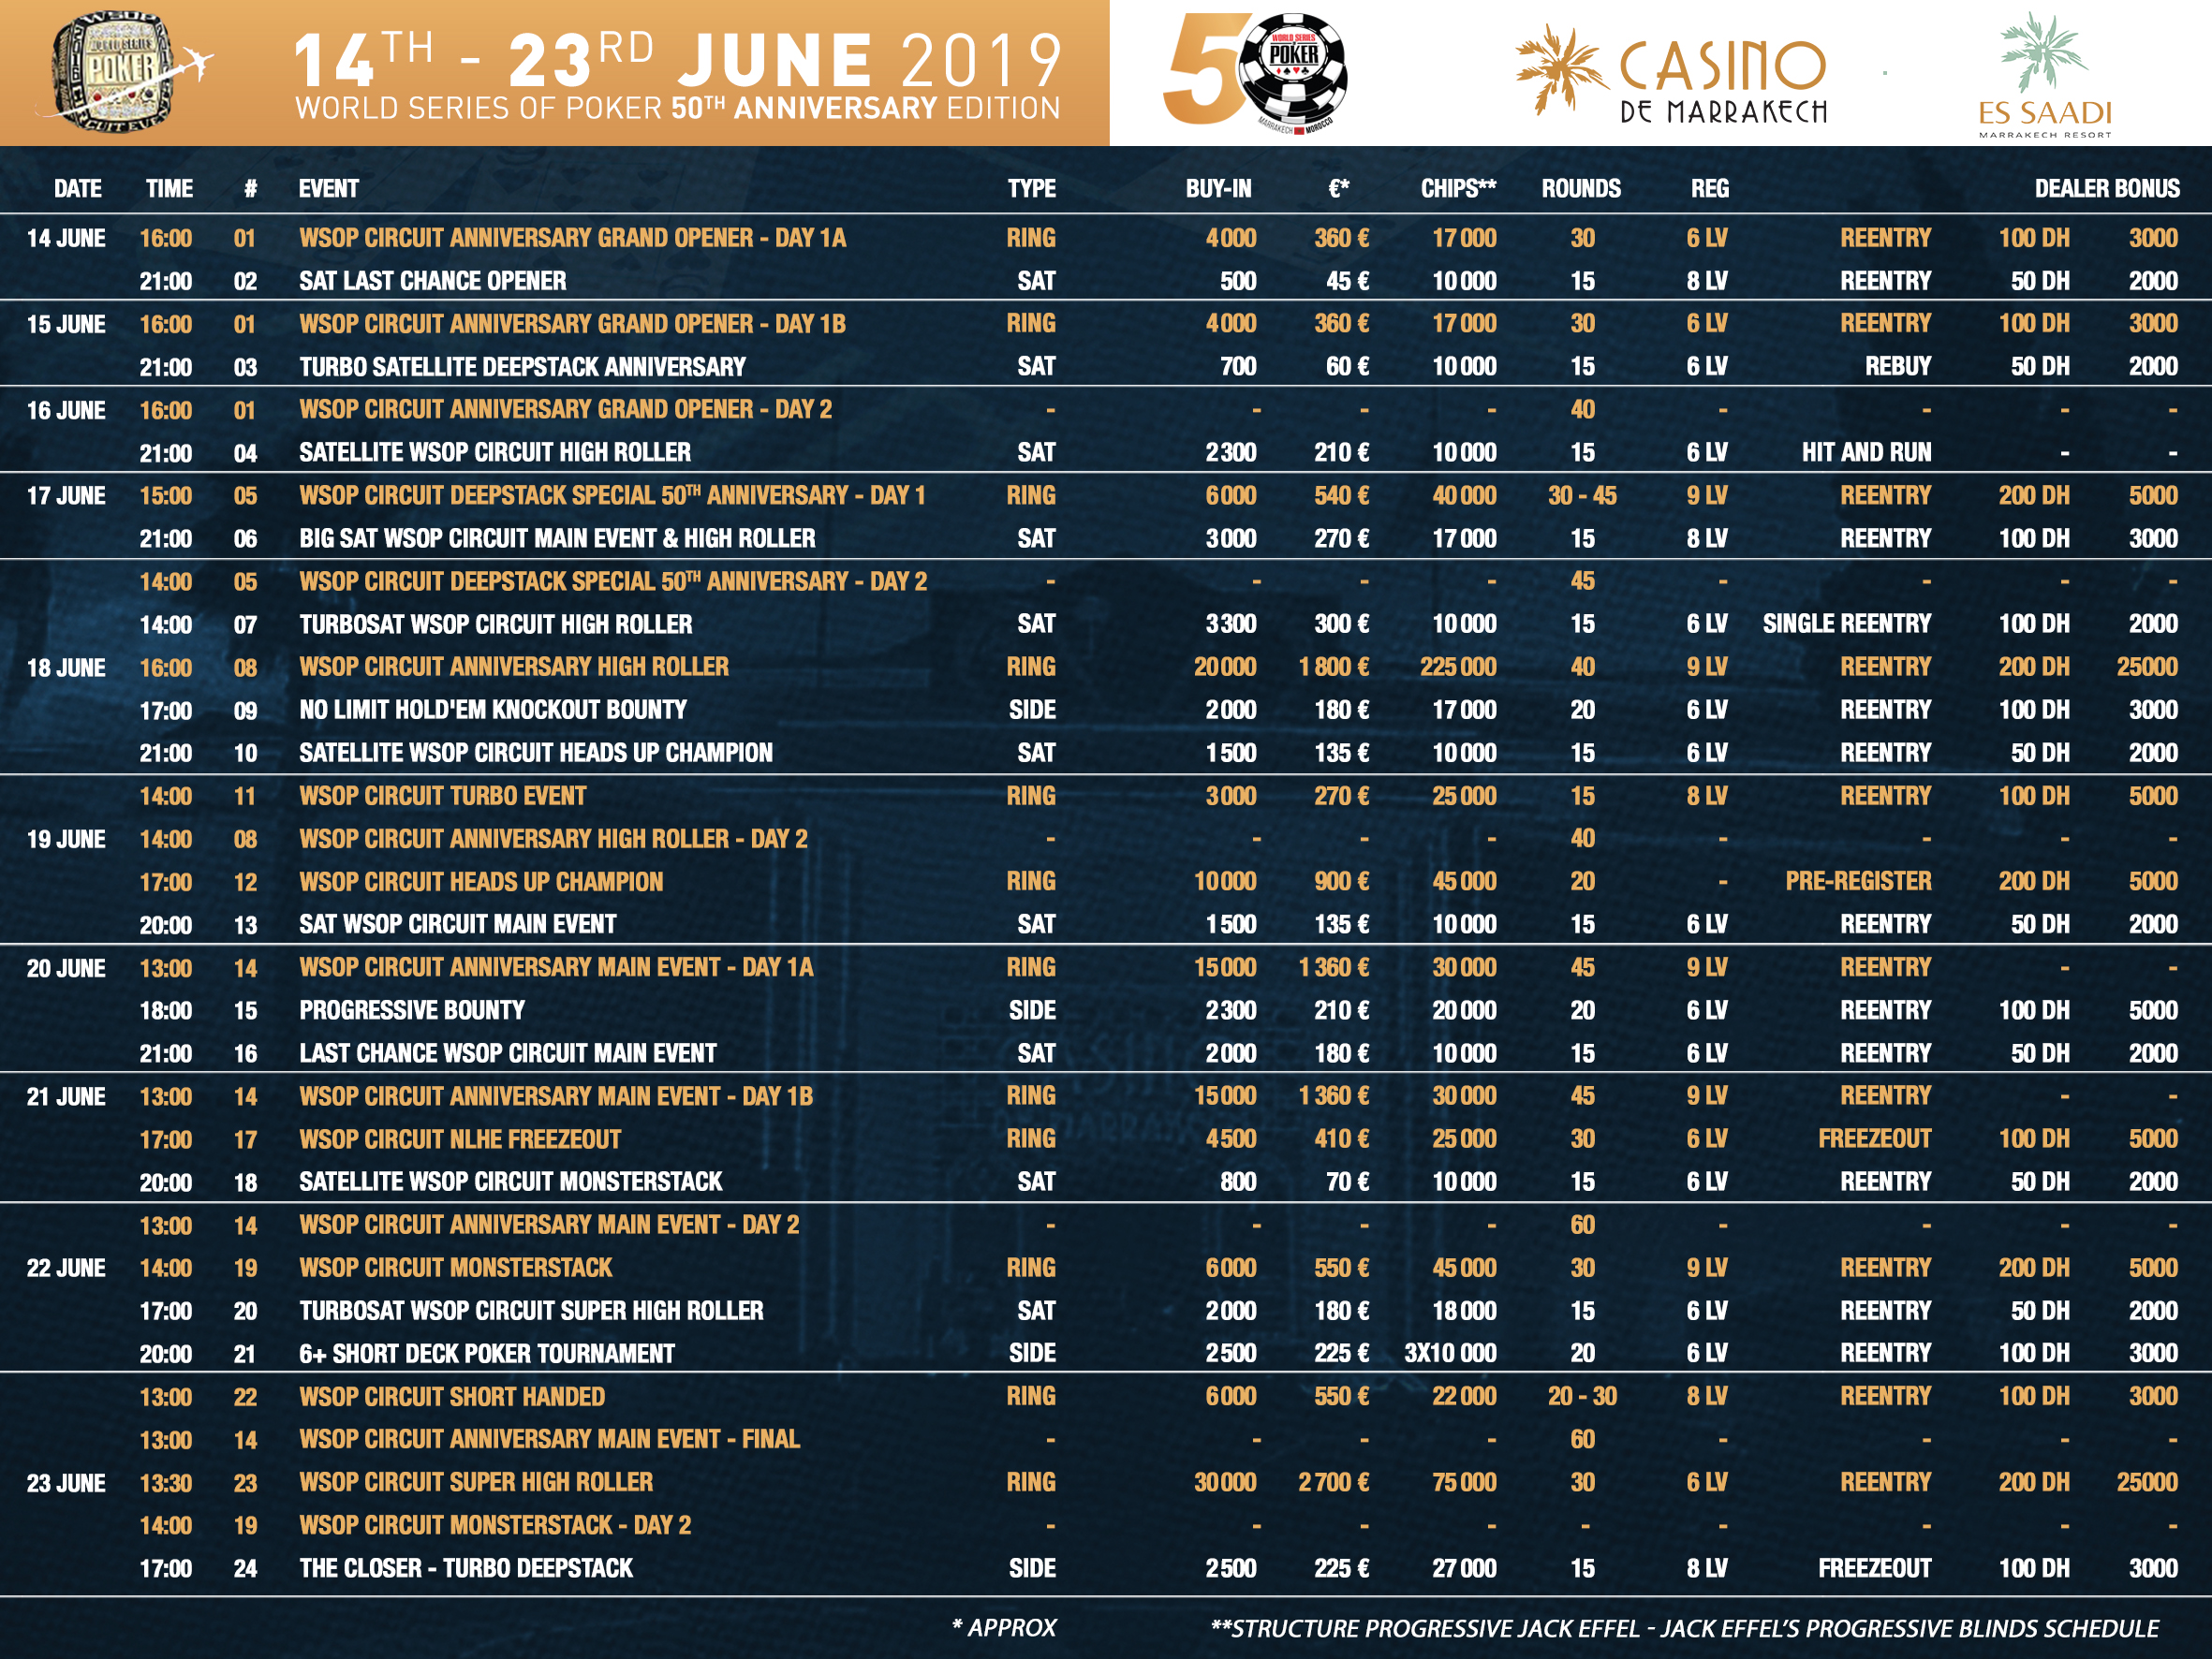 Wsop 2019 Main Event Schedule The World Series of Poker come back to Marrakesh from June 14th to